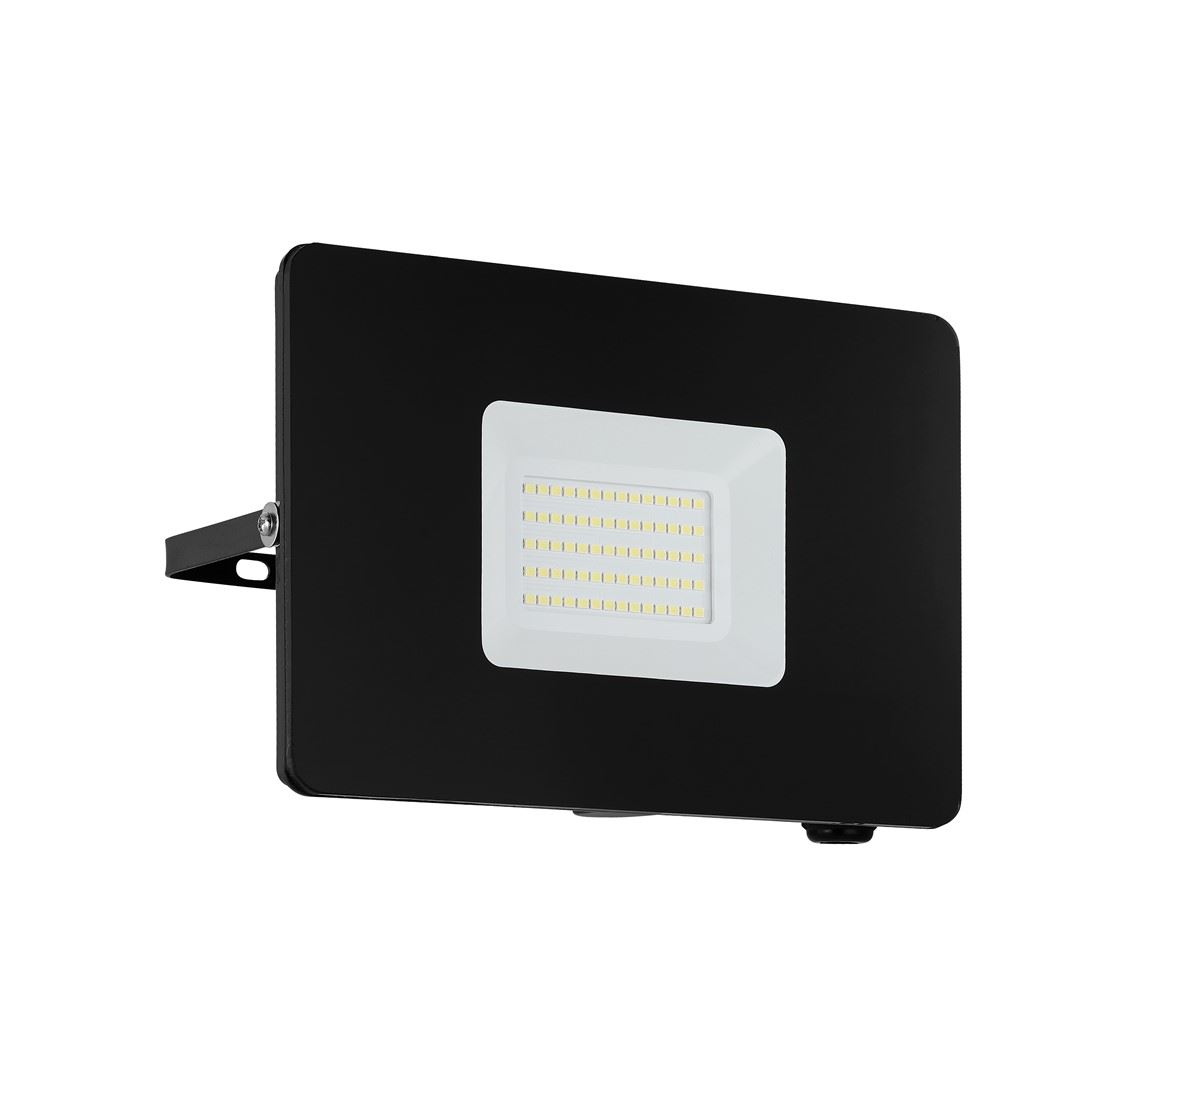 EGLO Pir Black Led Flood Light Outdoor Security Floodlight 50W Aluminium